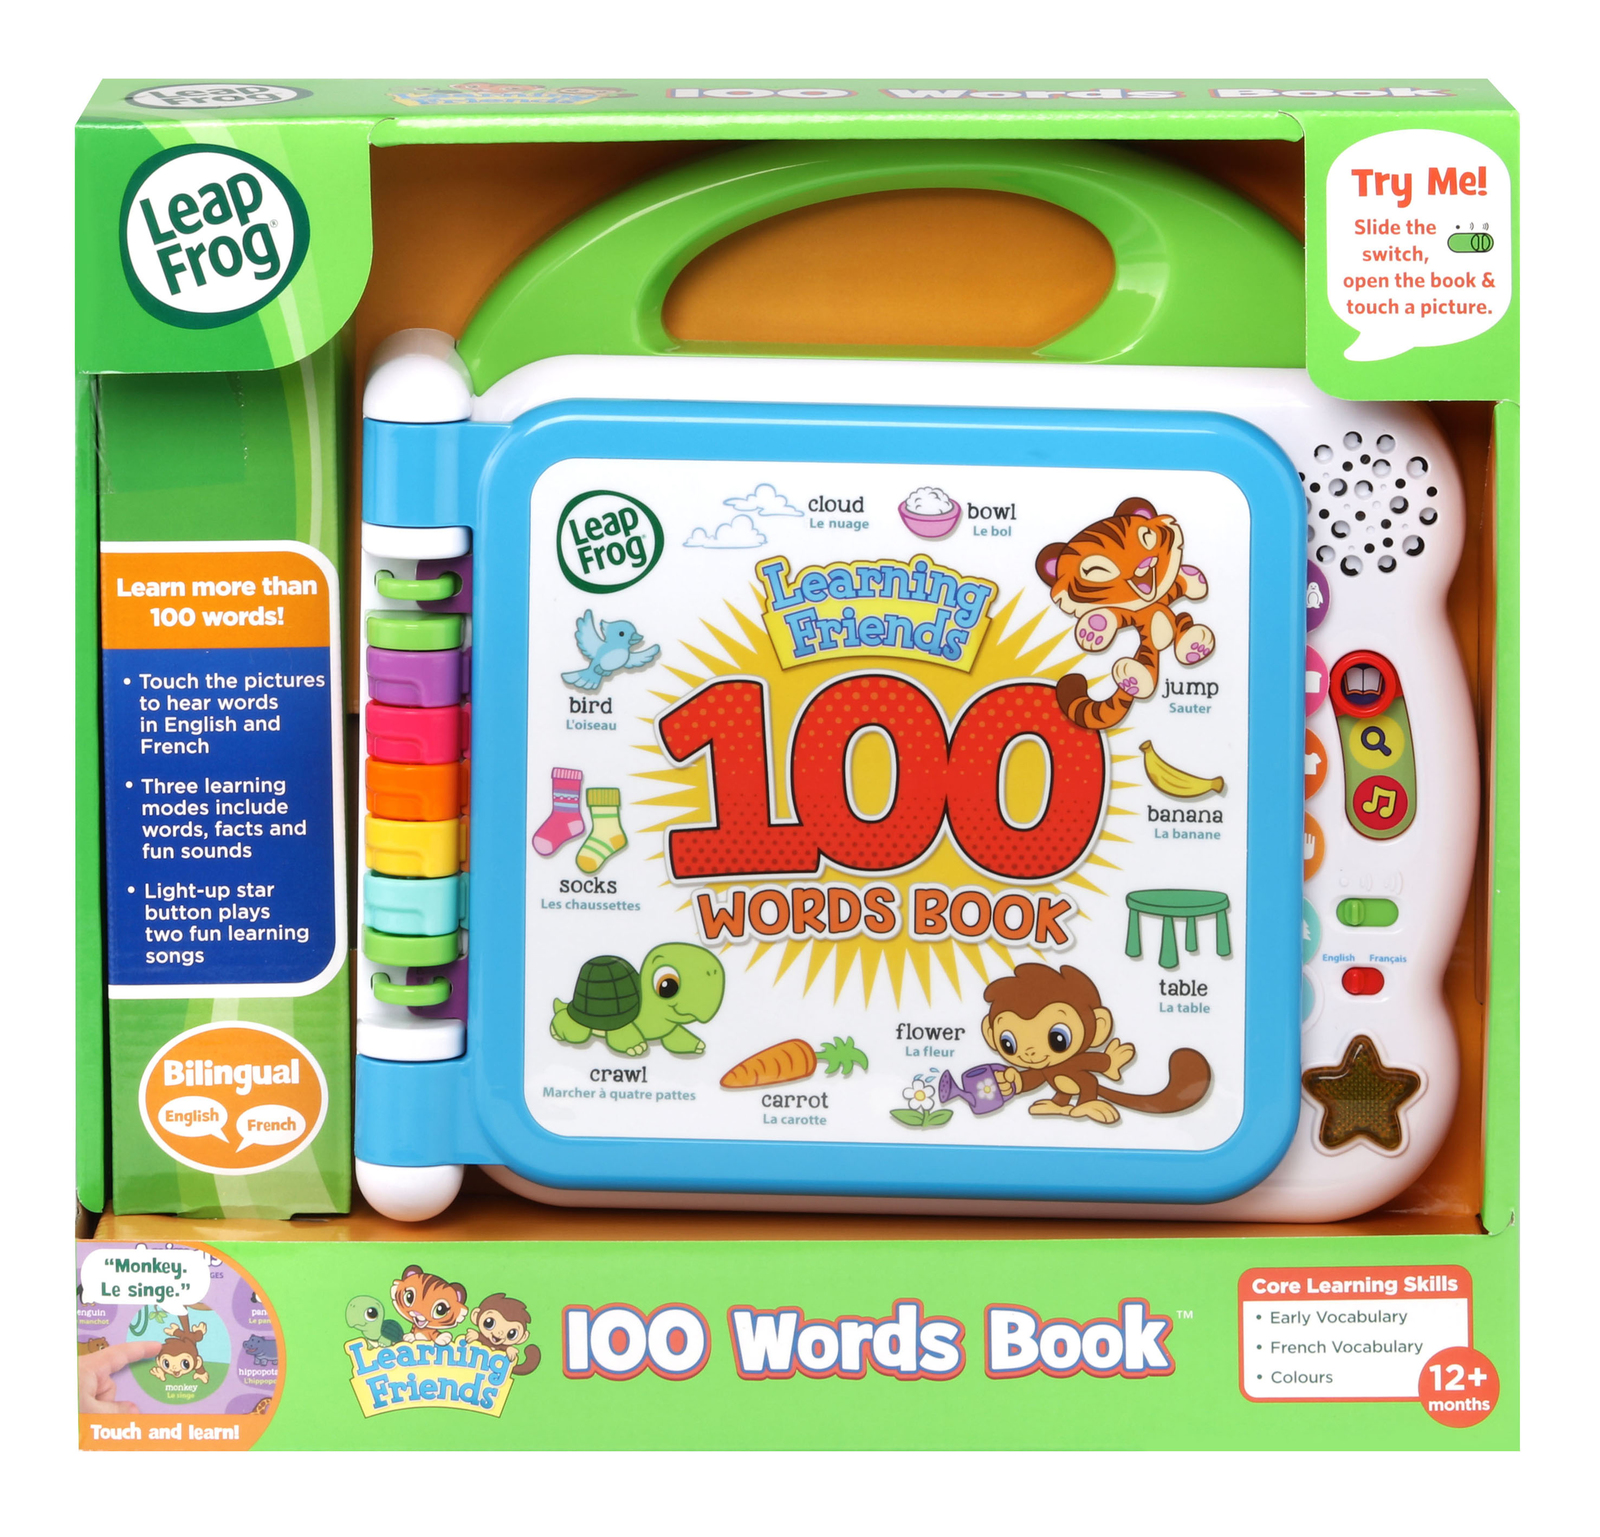 Leapfrog: Learning Friends - 100 Words Book image